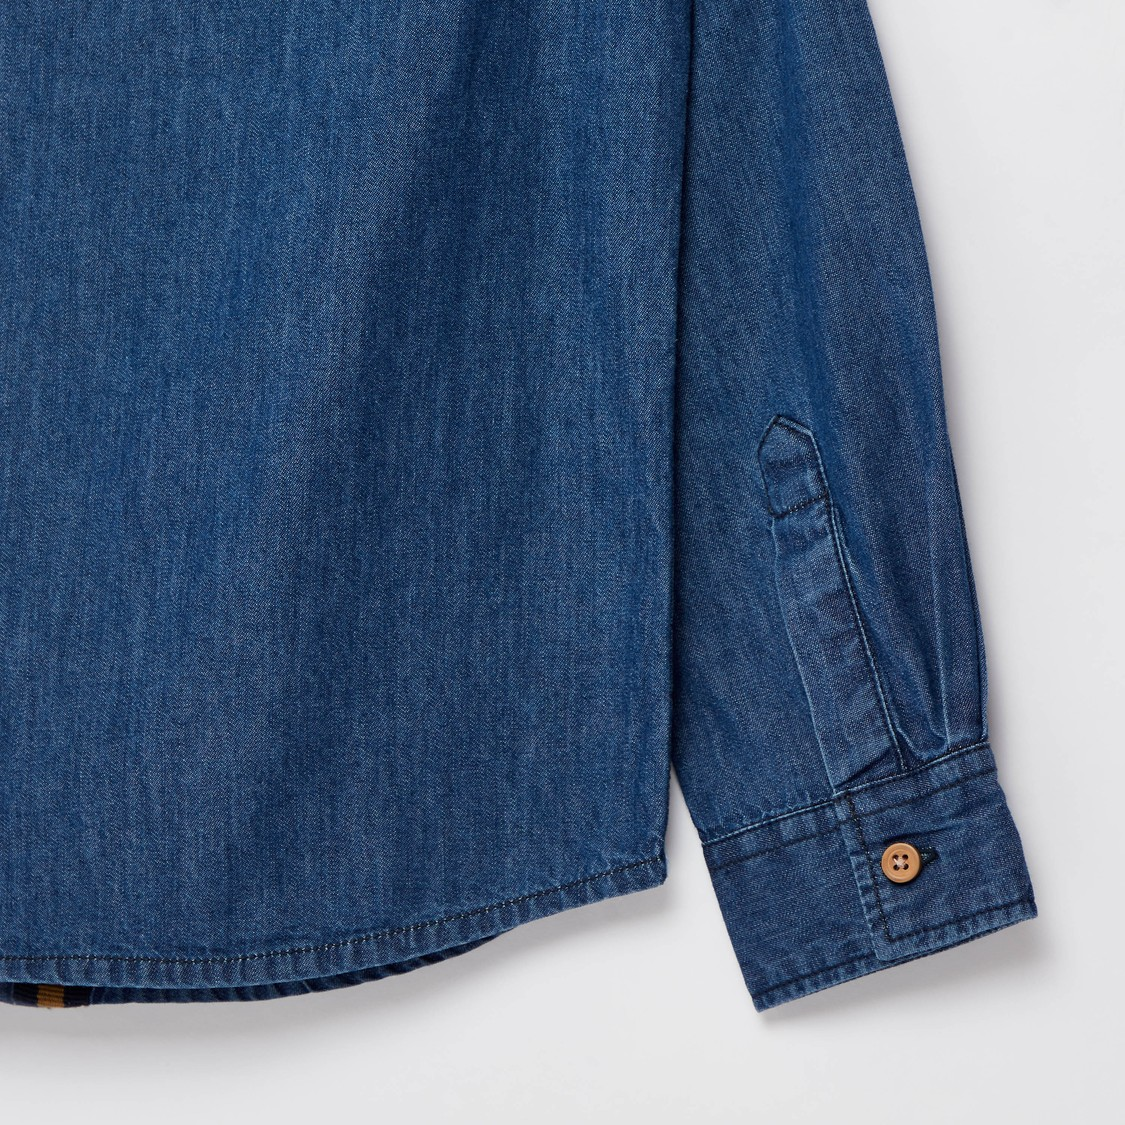 Embroidered Denim Shirt with Spread Collar and Long Sleeves